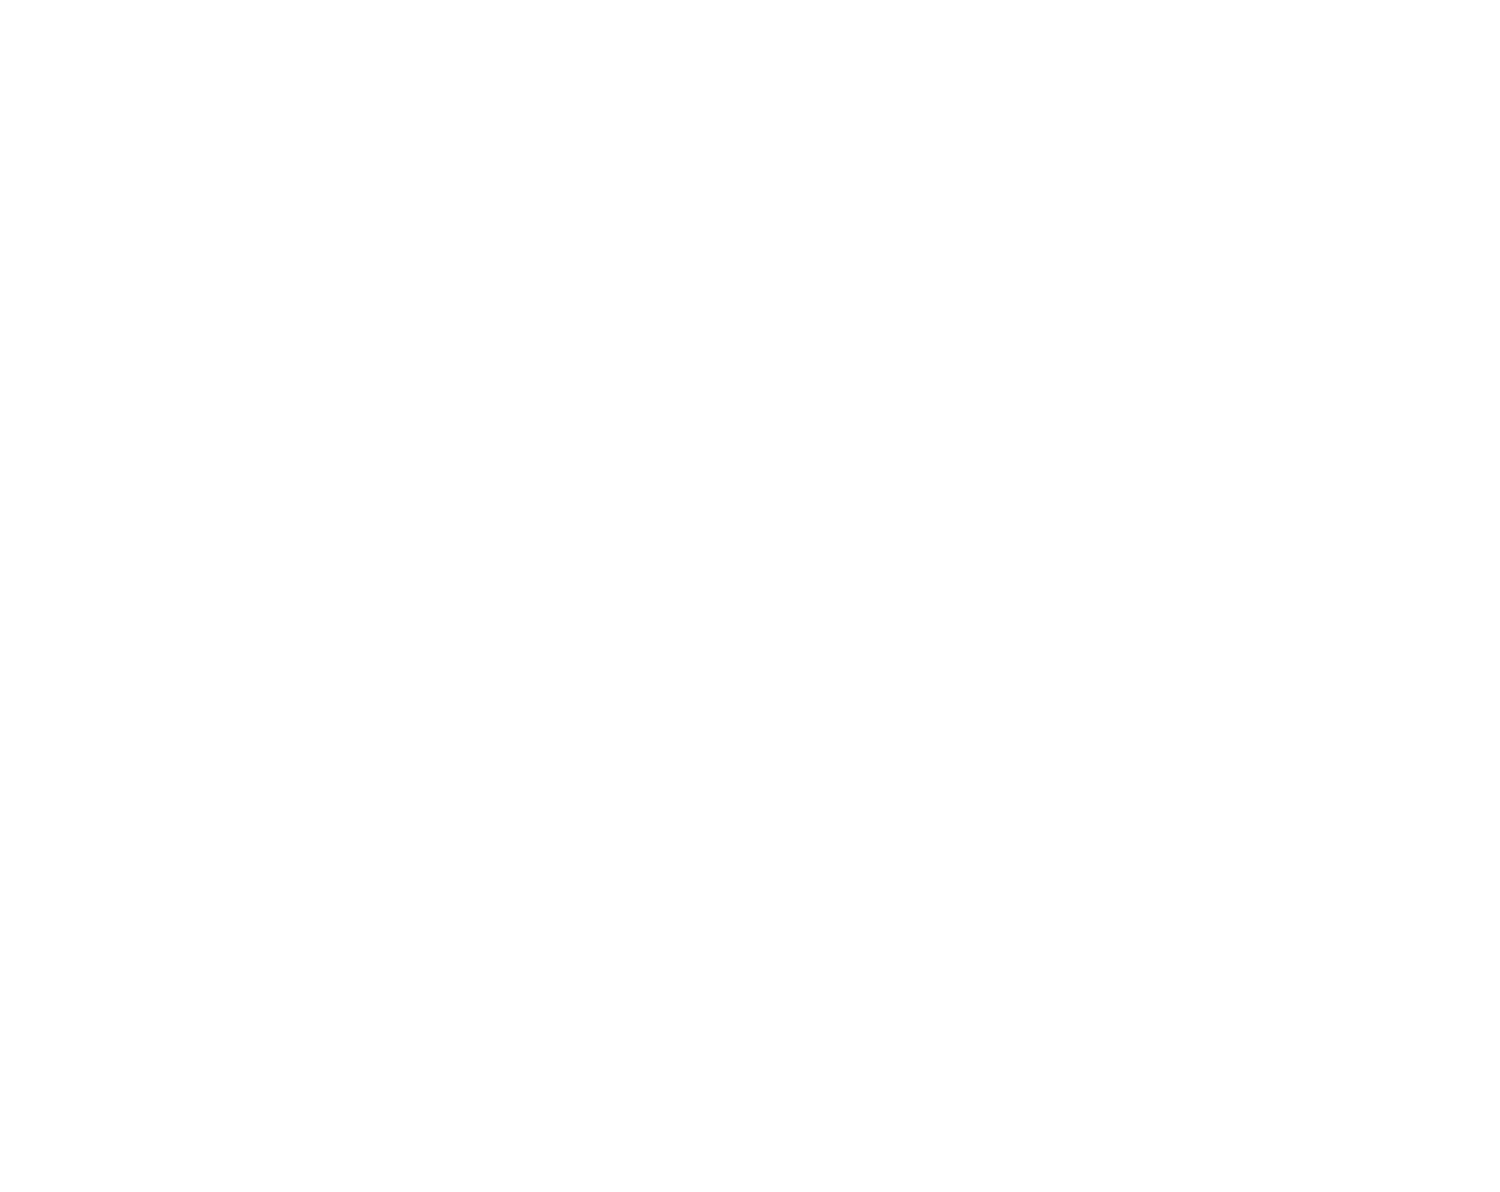 7Mountains Business